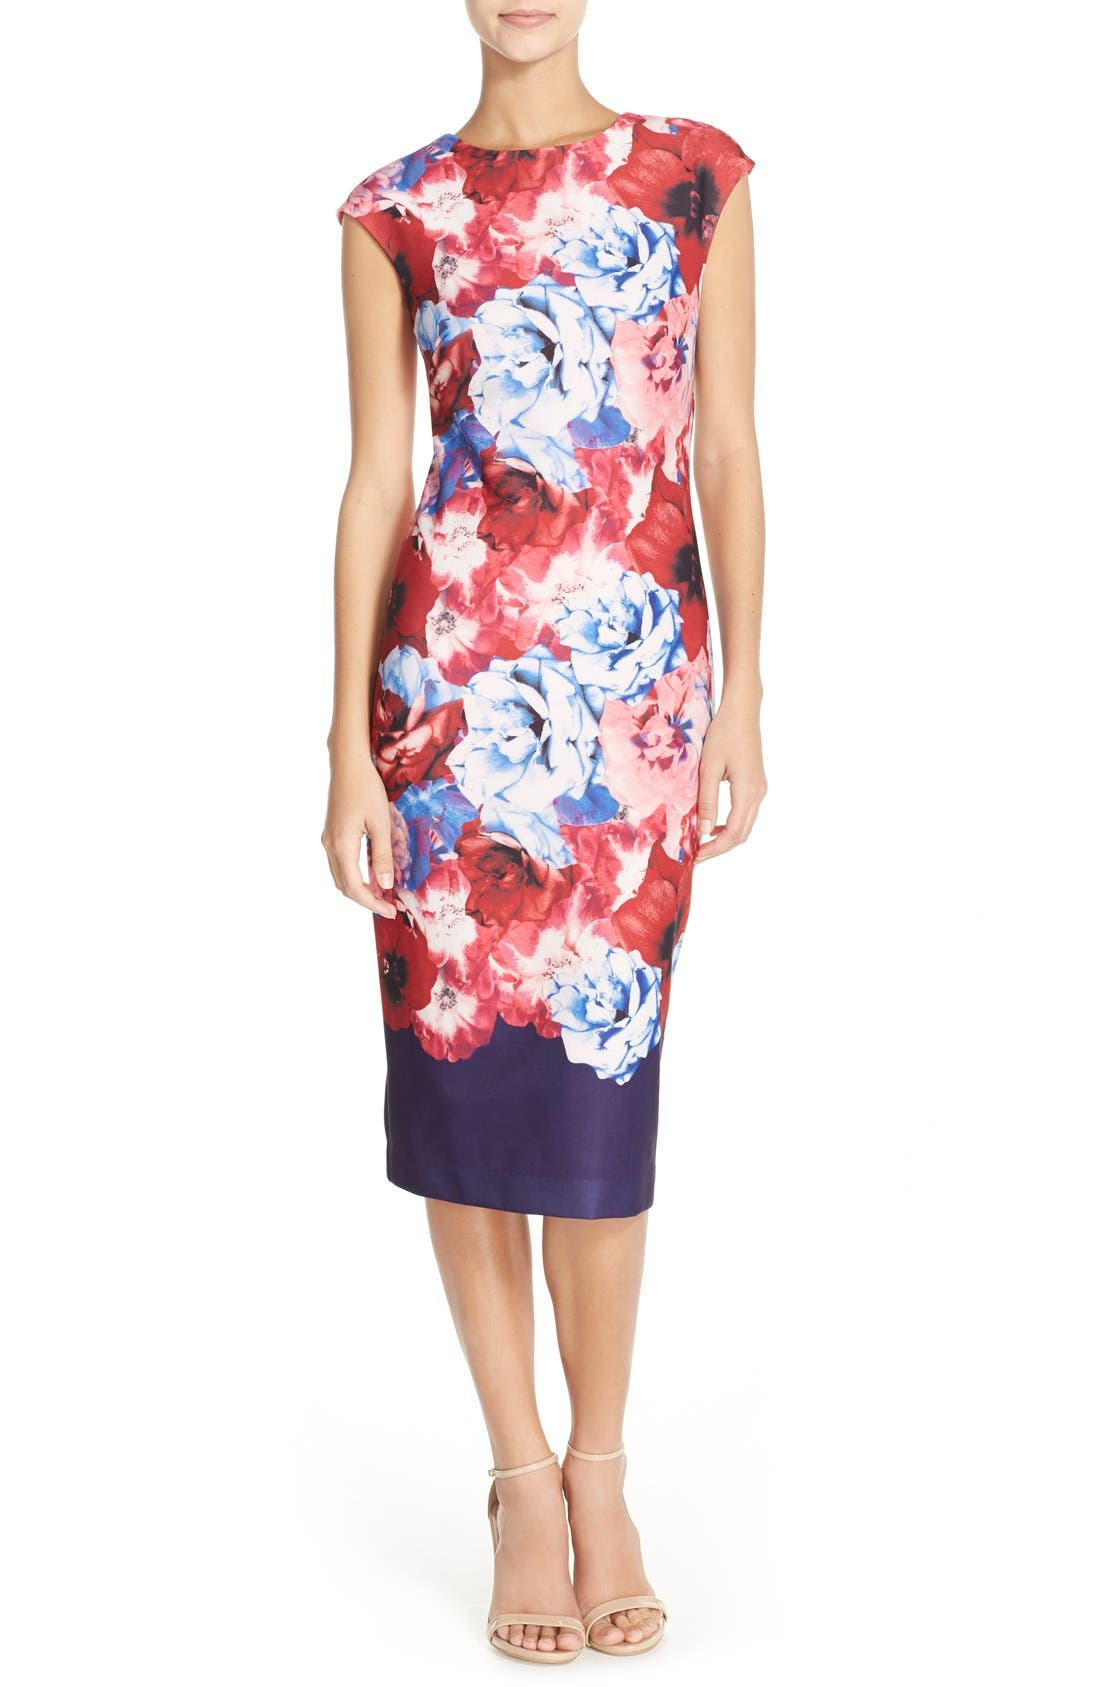 Alternate Image 1 Selected - Vince Camuto Floral Print Stretch Midi Dress (Regular & Petite)